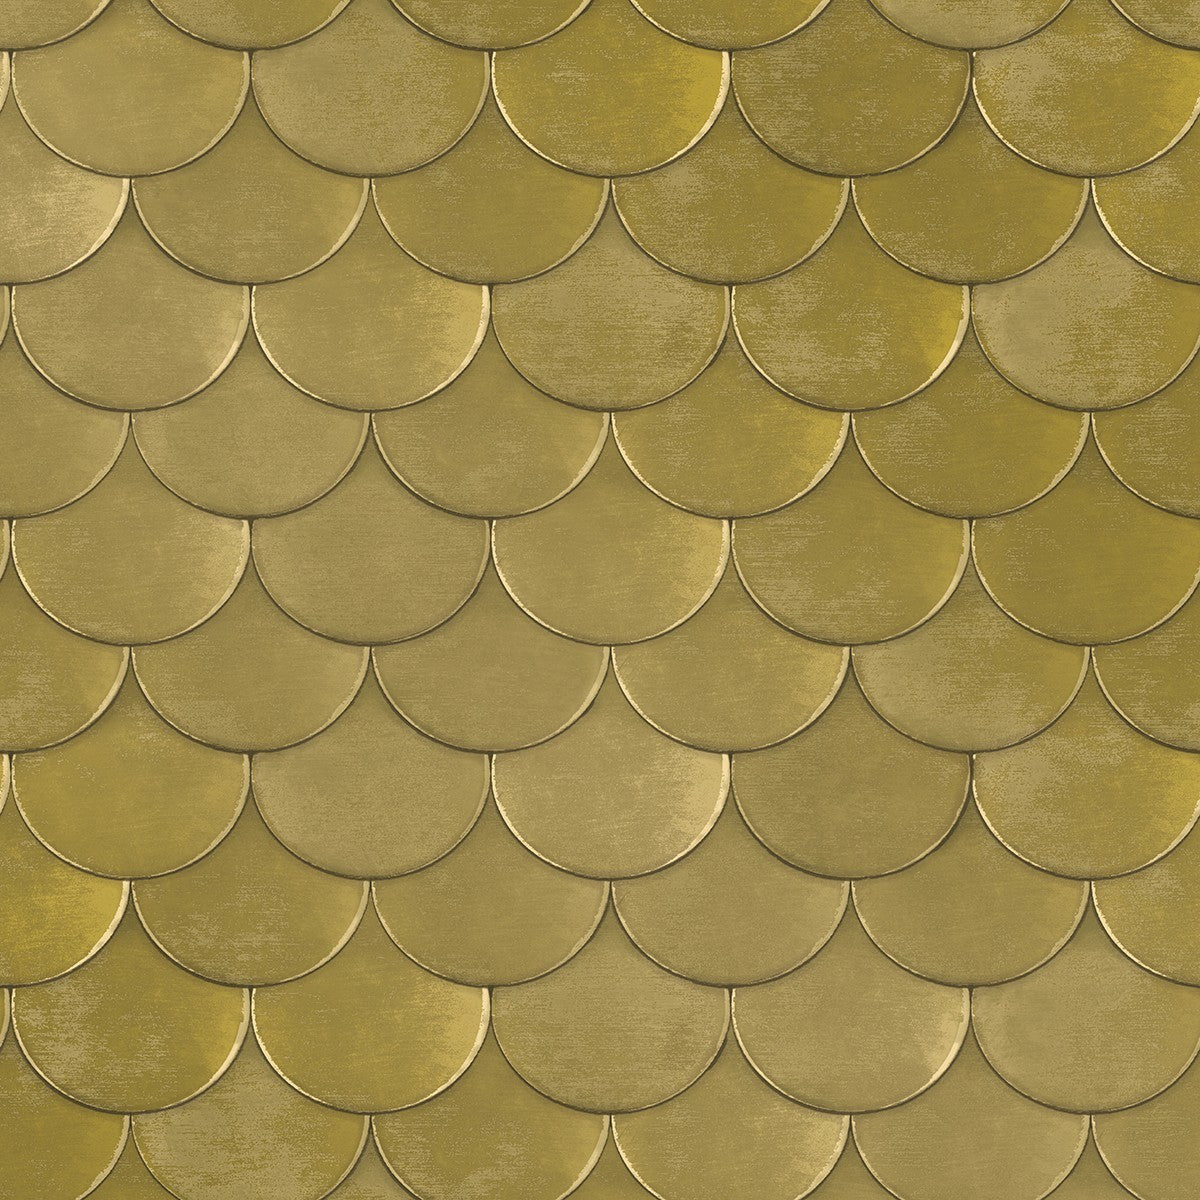 Brass Belly Old World Brass Metallic Self-Adhesive BR410 Wallpaper